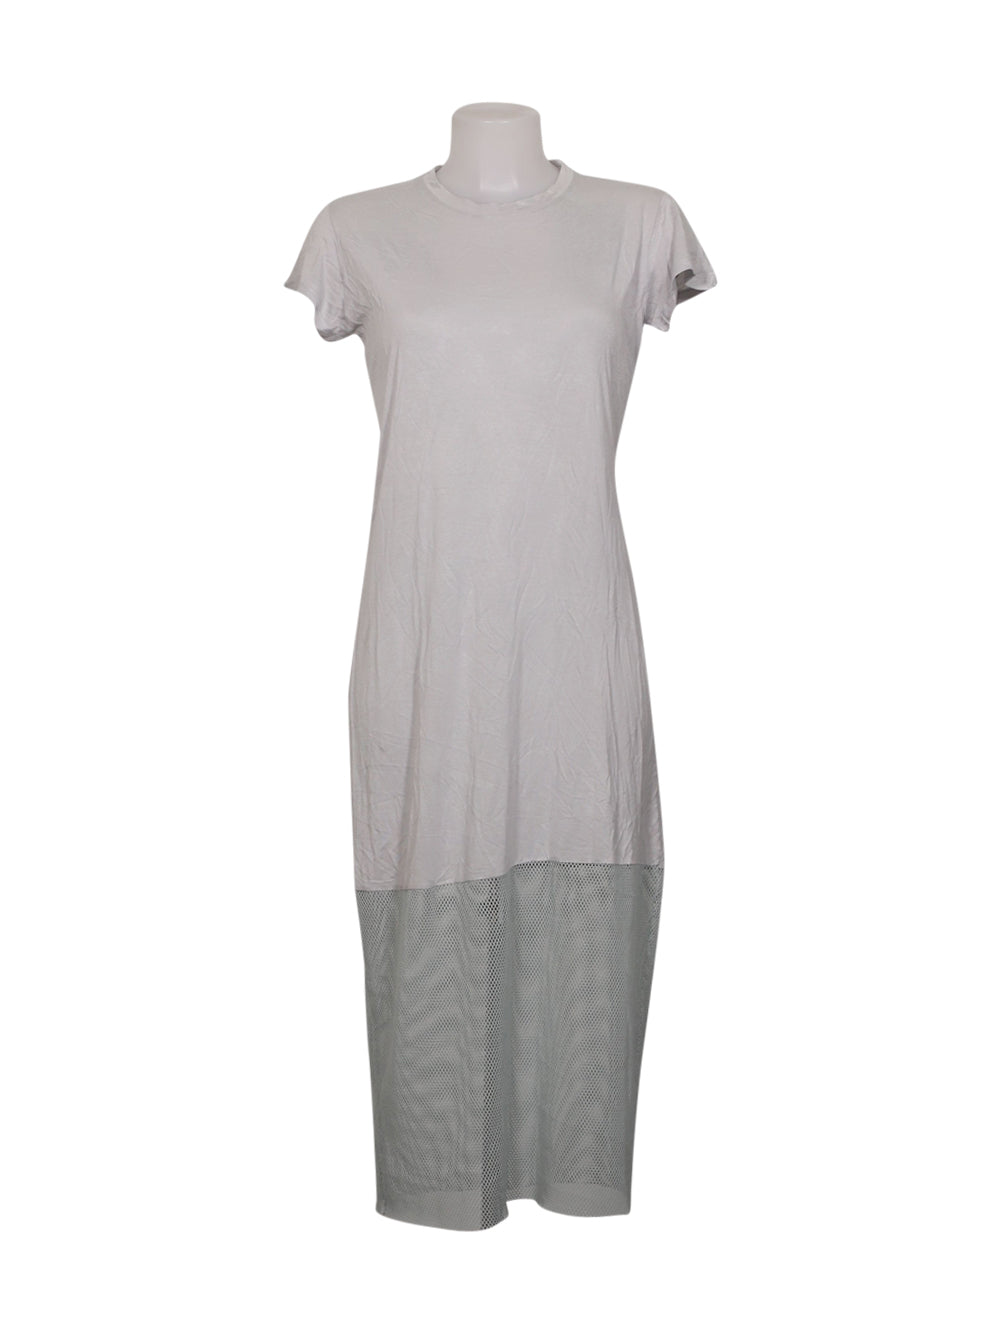 Front photo of Preloved hidden forest market Grey Woman's dress - size 10/M